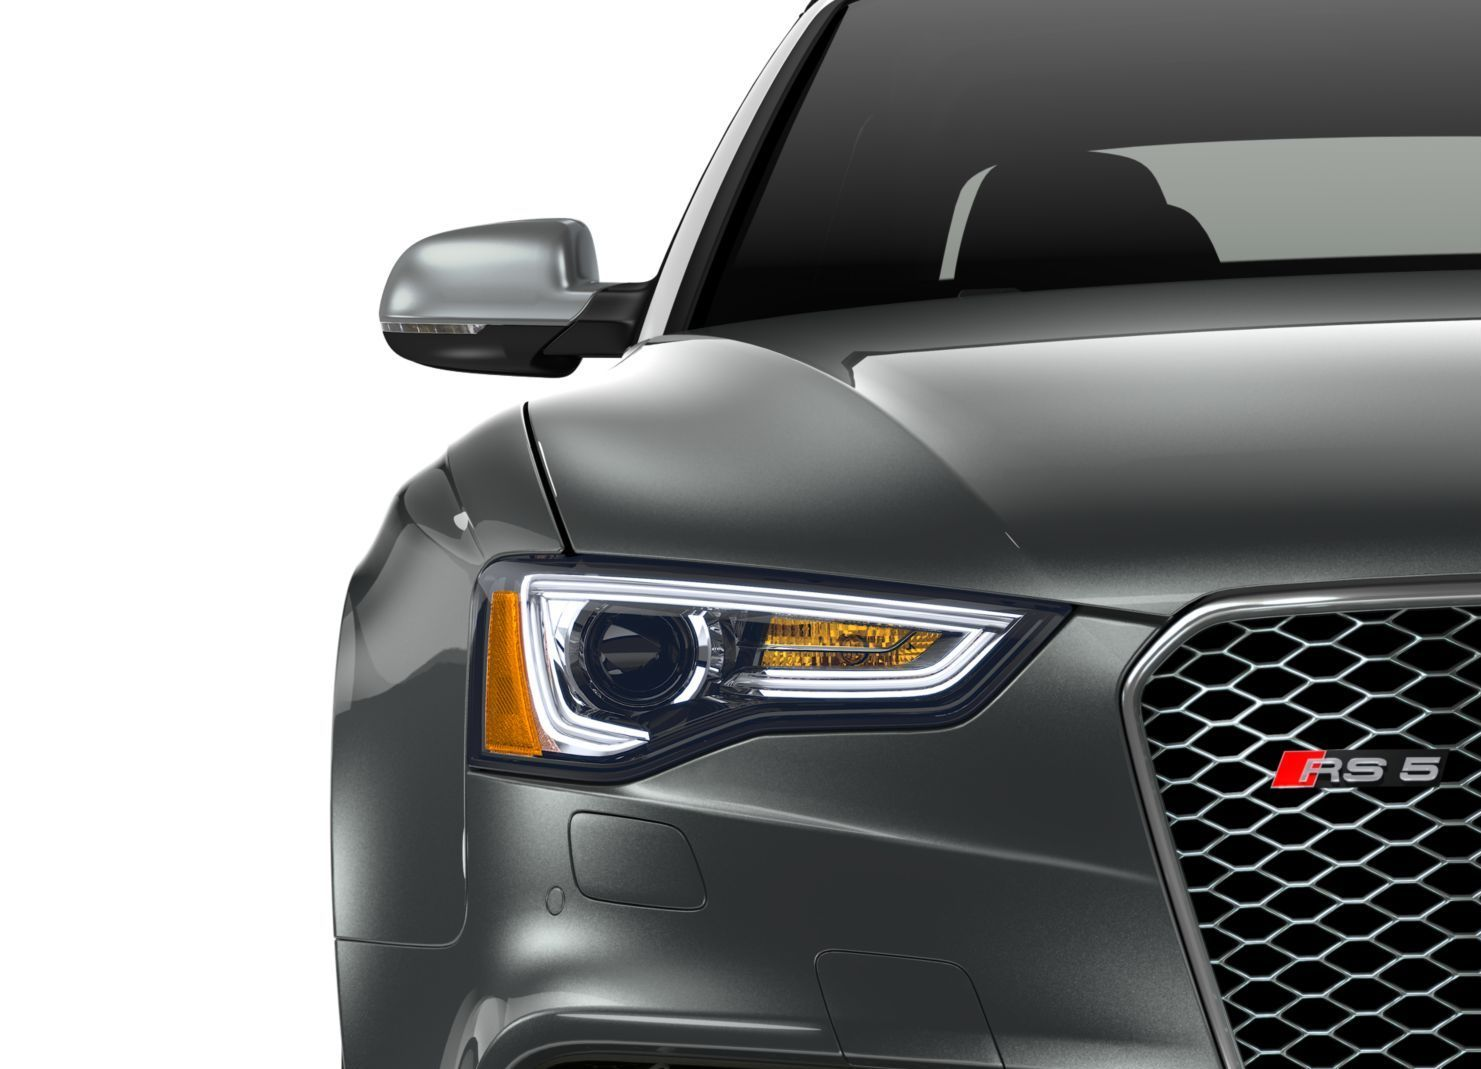 2014 Audi RS5 Cabriolet Buyers Guide - Black Optics vs Matte Aluminum Optics 47